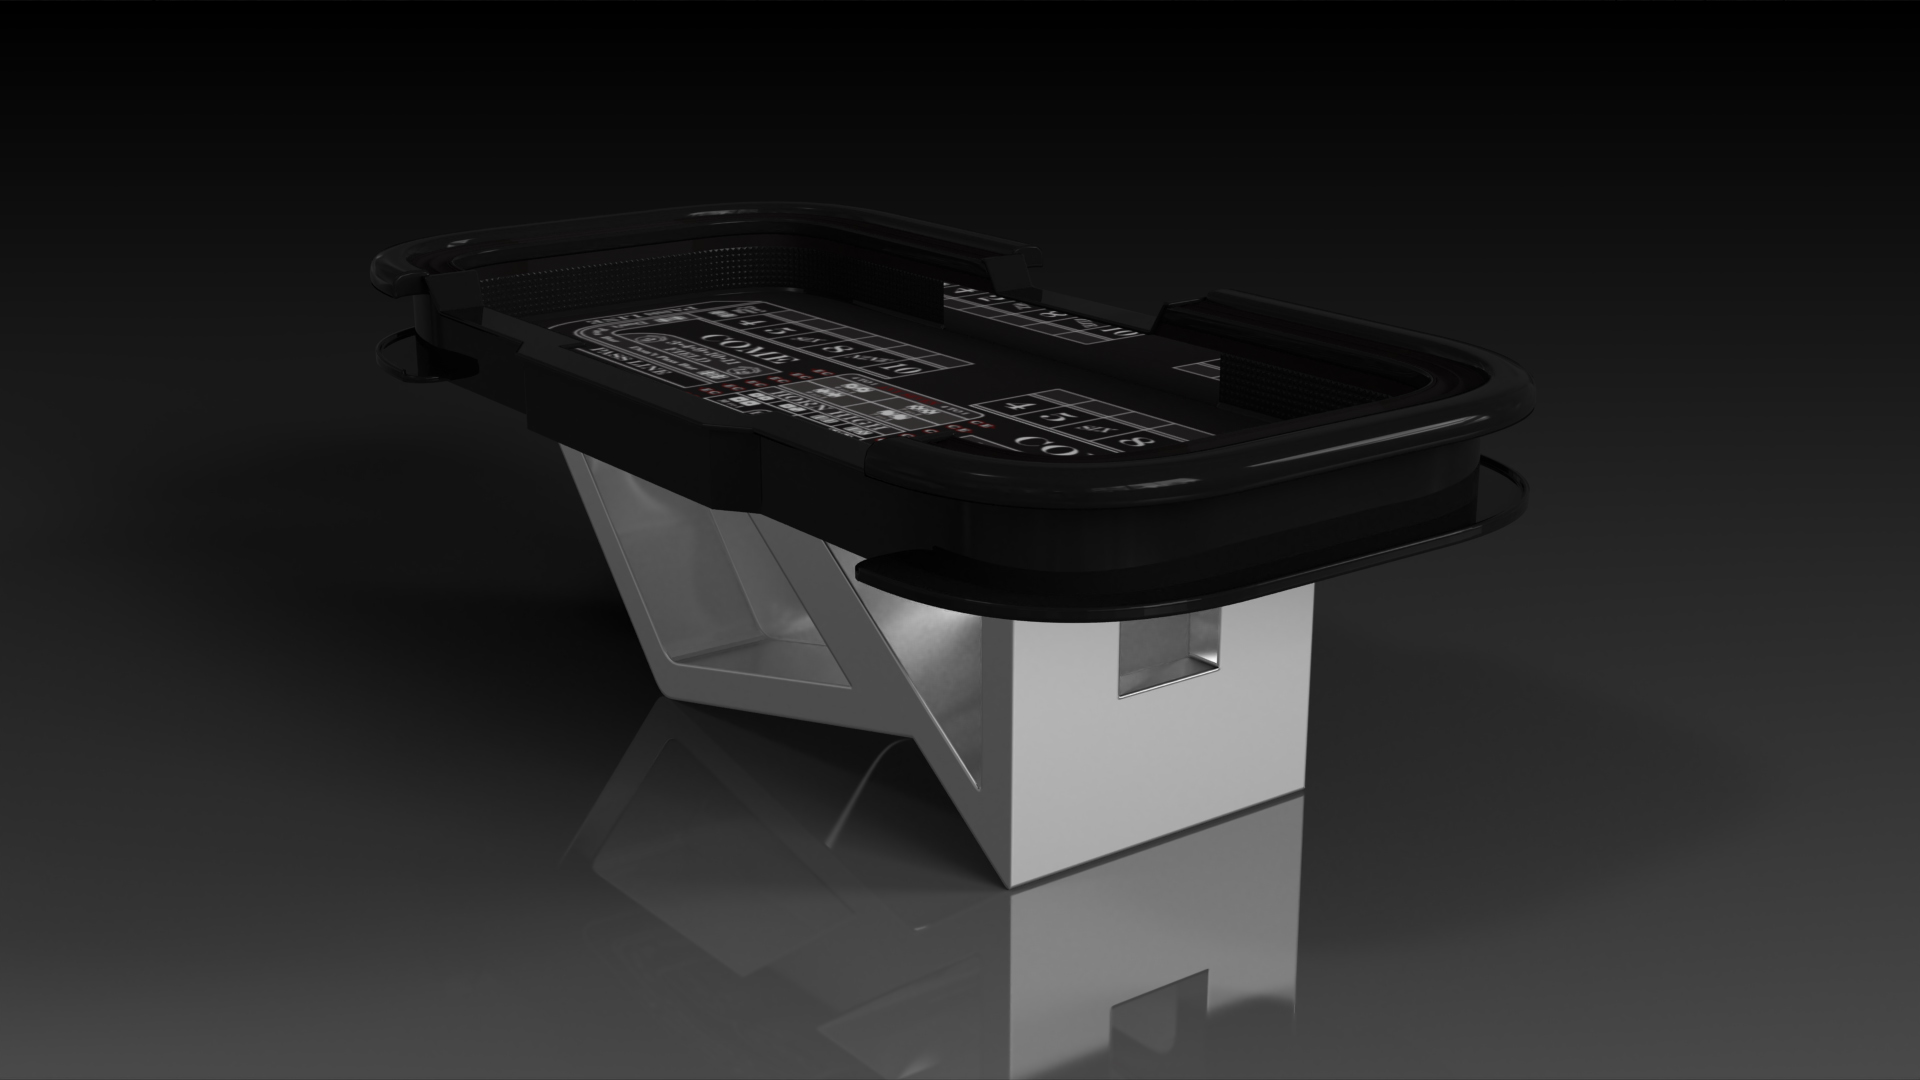 Rumba Brushed Aluminum Craps